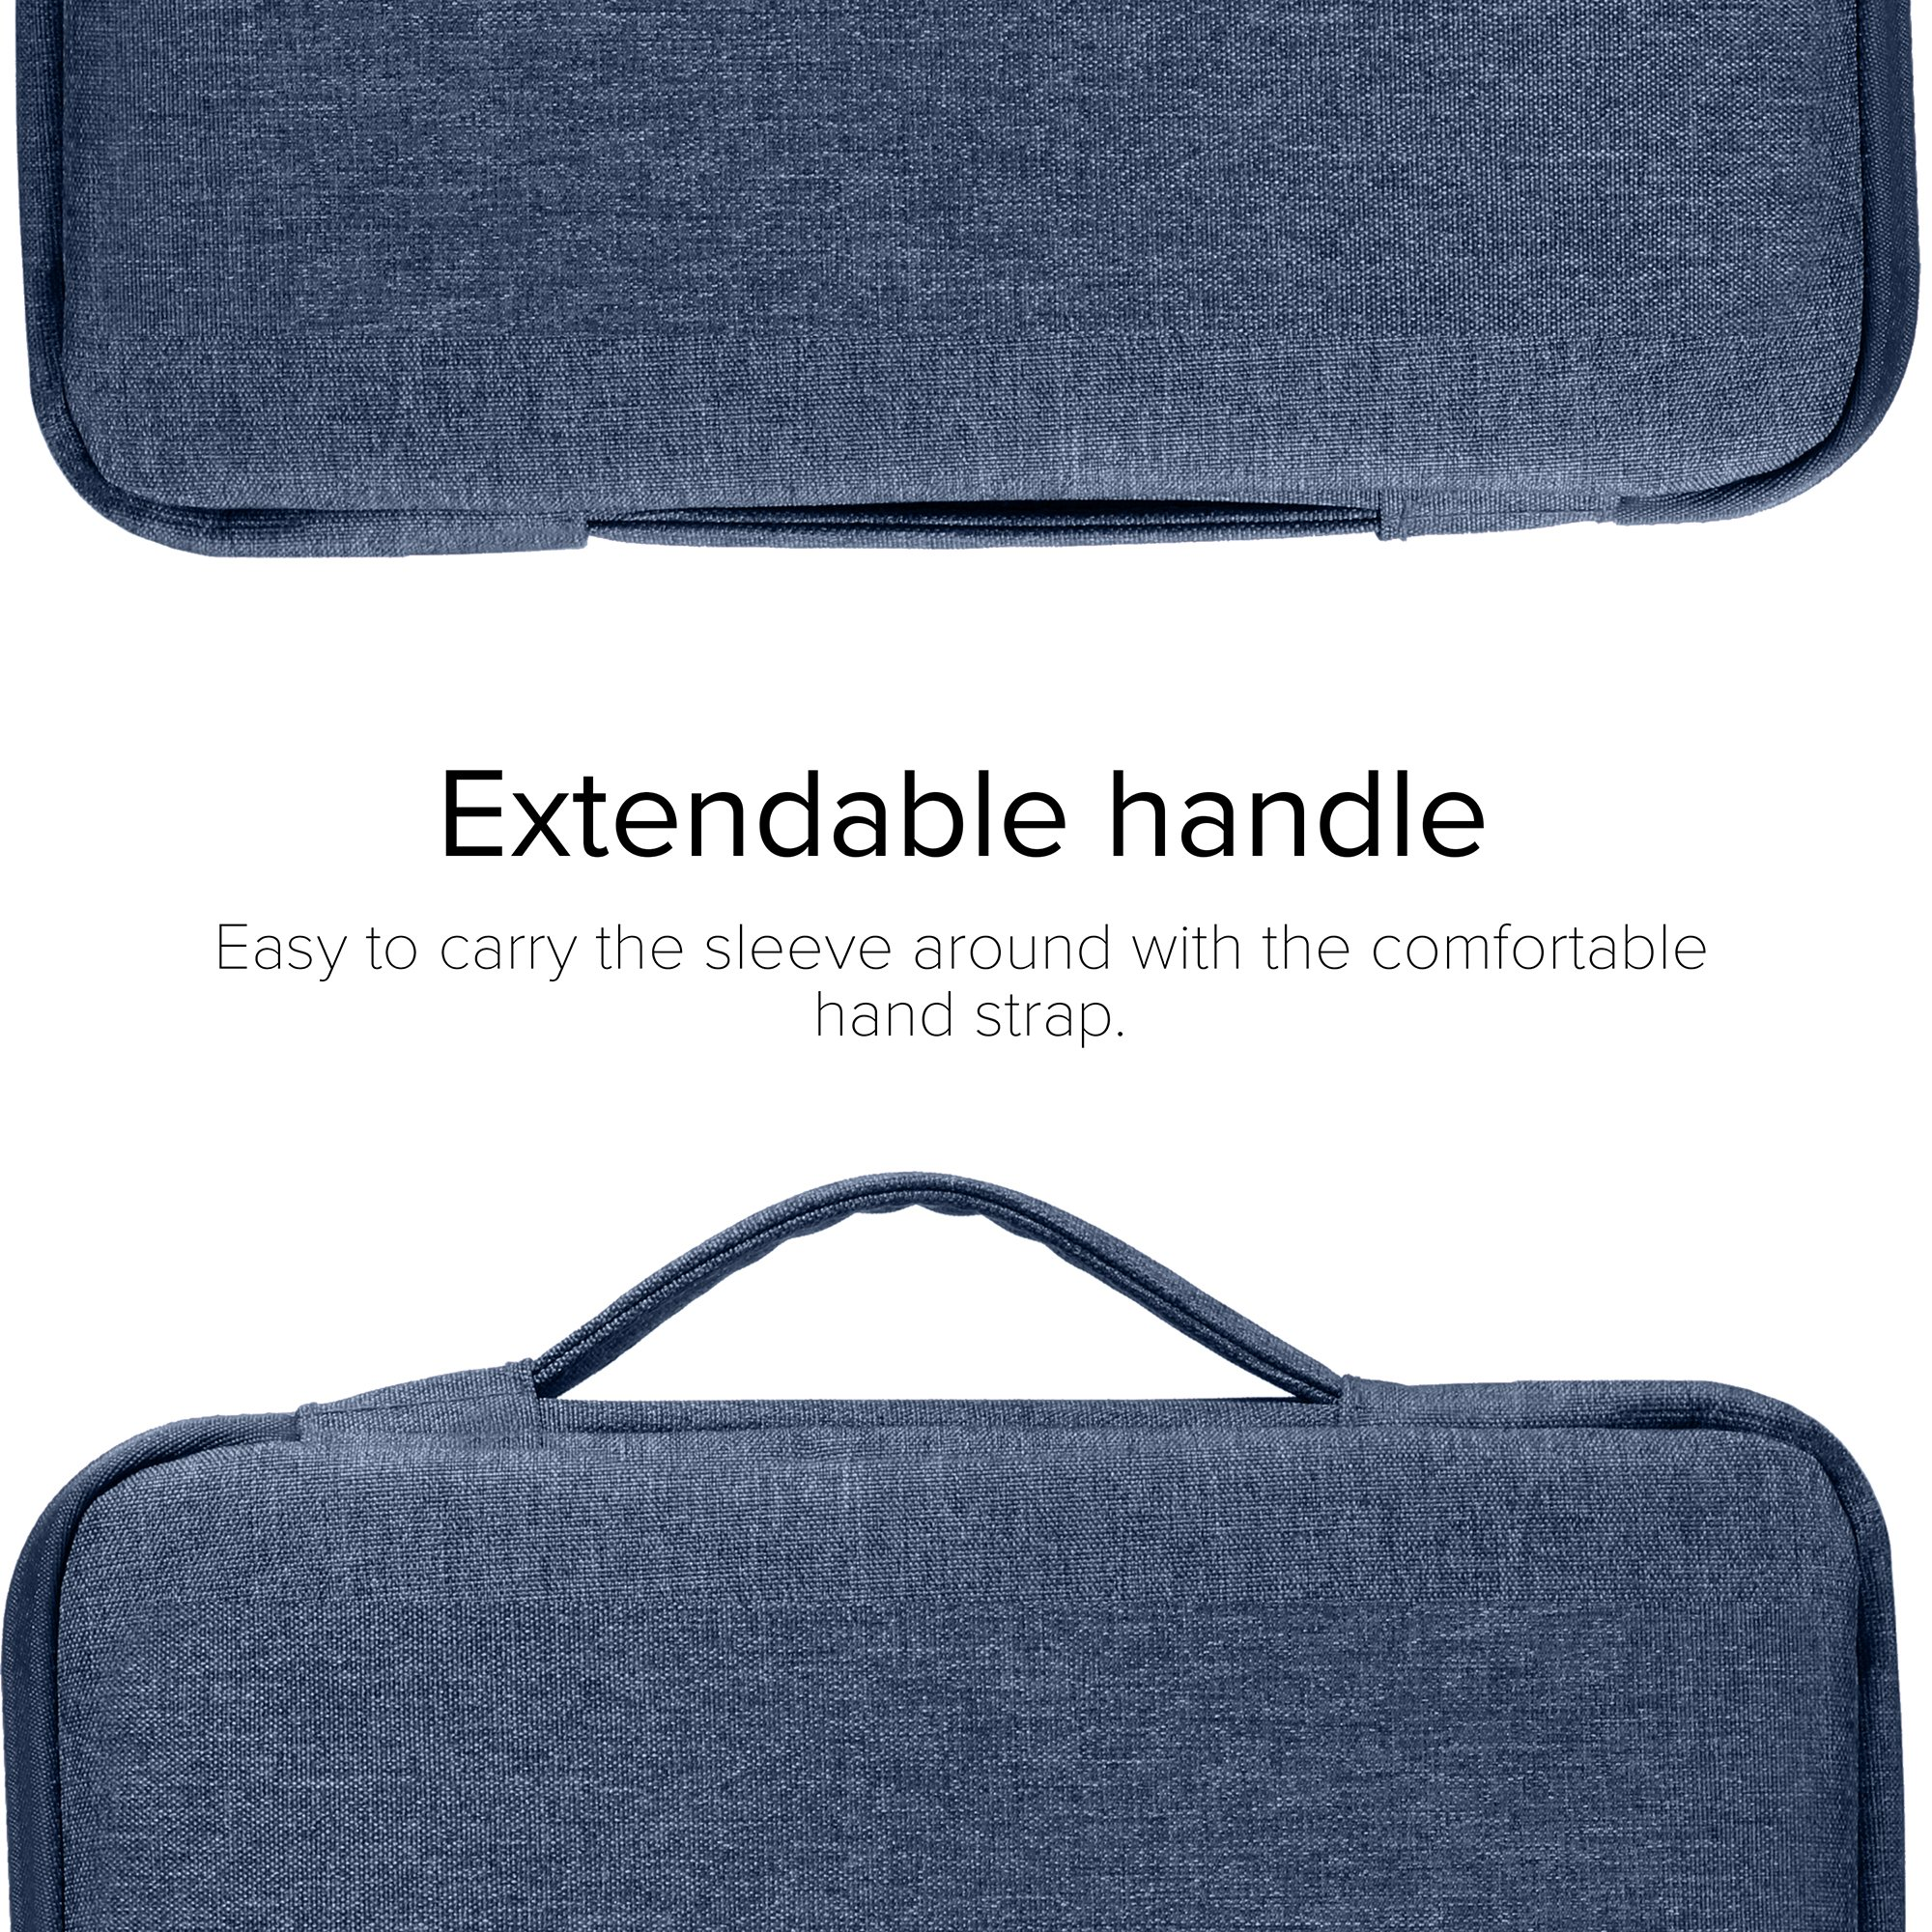 GMYLE 2 in 1 Bundle Soft-Touch Frosted Hard Case for Macbook Air 13 inch (Model: A1369/A1466) and 13-13.3 inch Water Repellent Laptop Sleeve with Handle and Pocket - Navy Blue by GMYLE (Image #4)